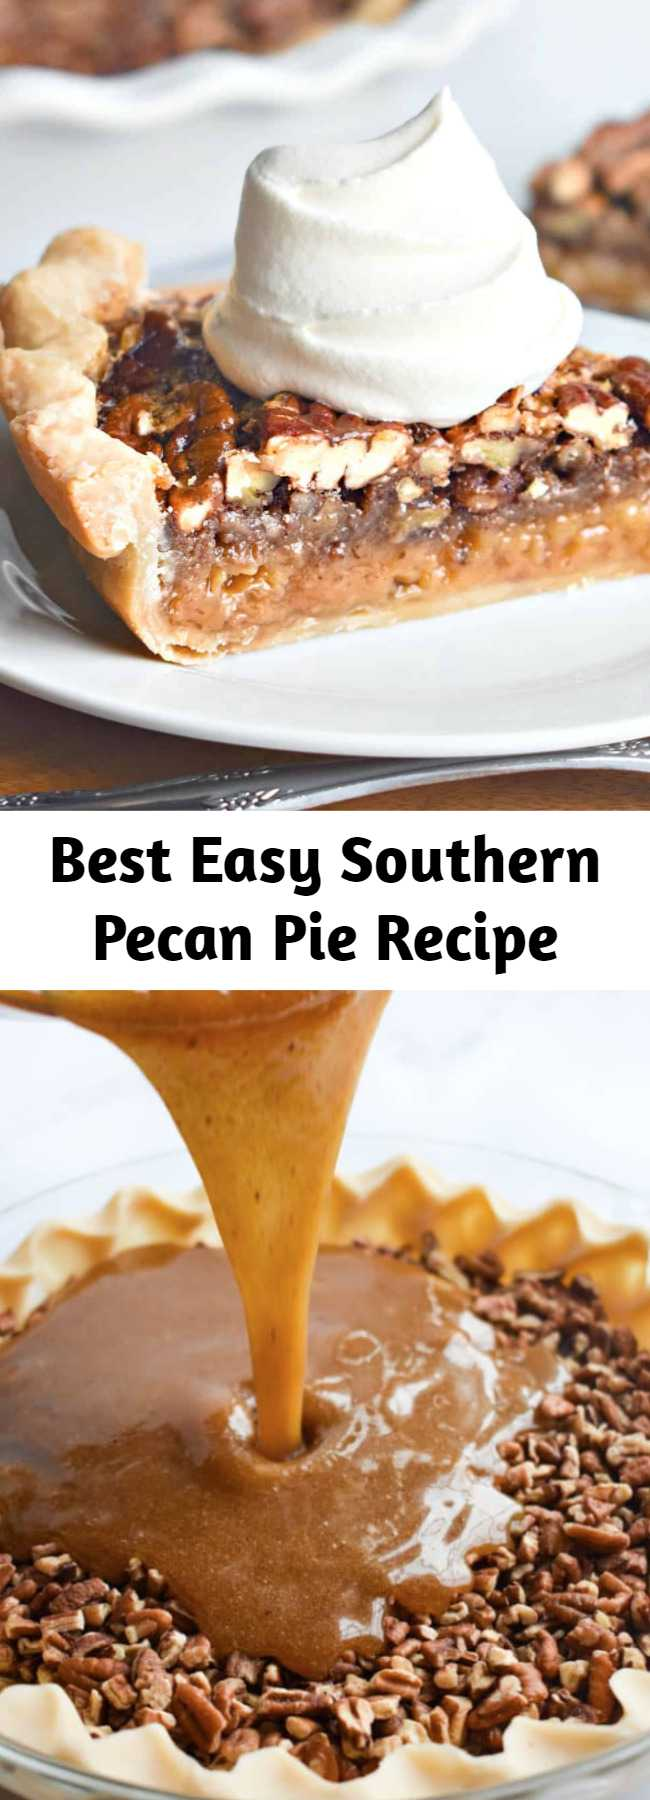 Best Easy Southern Pecan Pie Recipe - The Best Southern Pecan Pie is made with a flaky pie crust, real butter, dark corn syrup, a touch of cinnamon and fresh pecans.